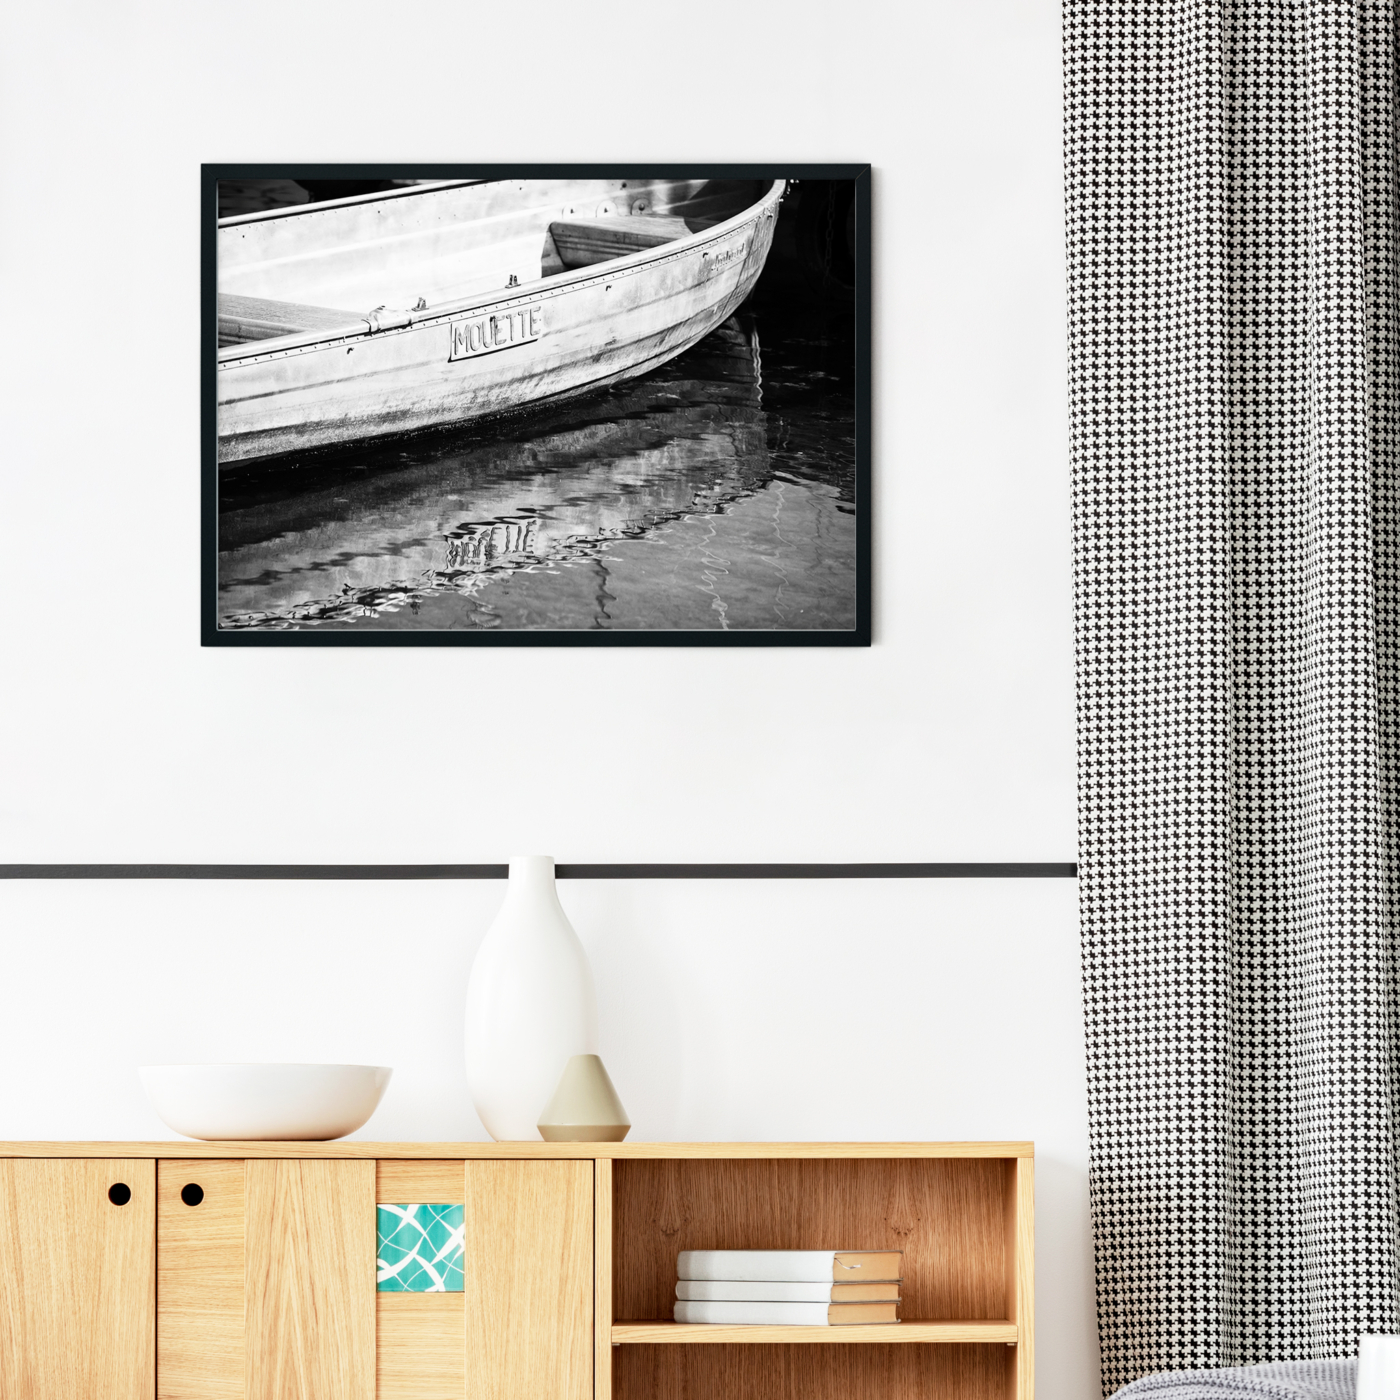 Boat in Geneva - black and white print without border in black frame on the wall